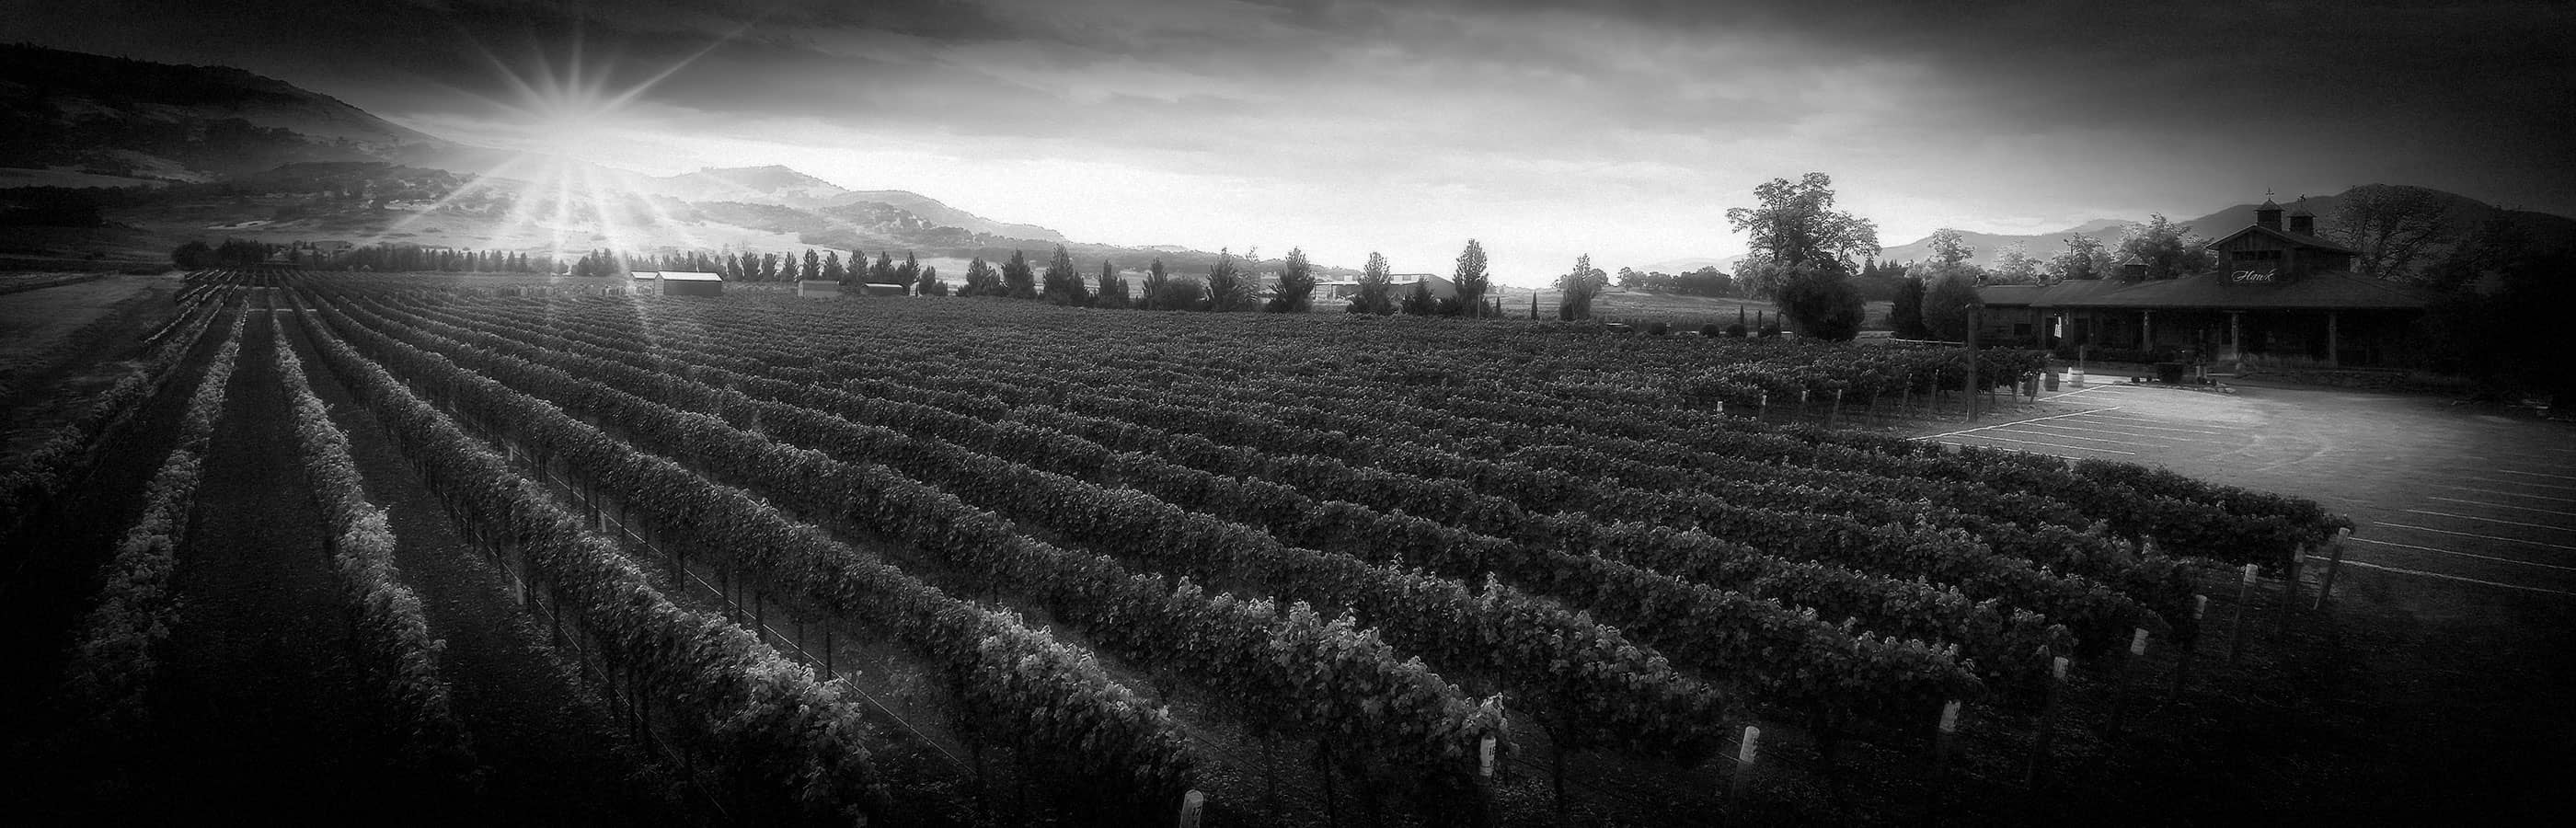 2Hawk Vineyard and Winery Building and Vineyard at Sunset (Grayscale)